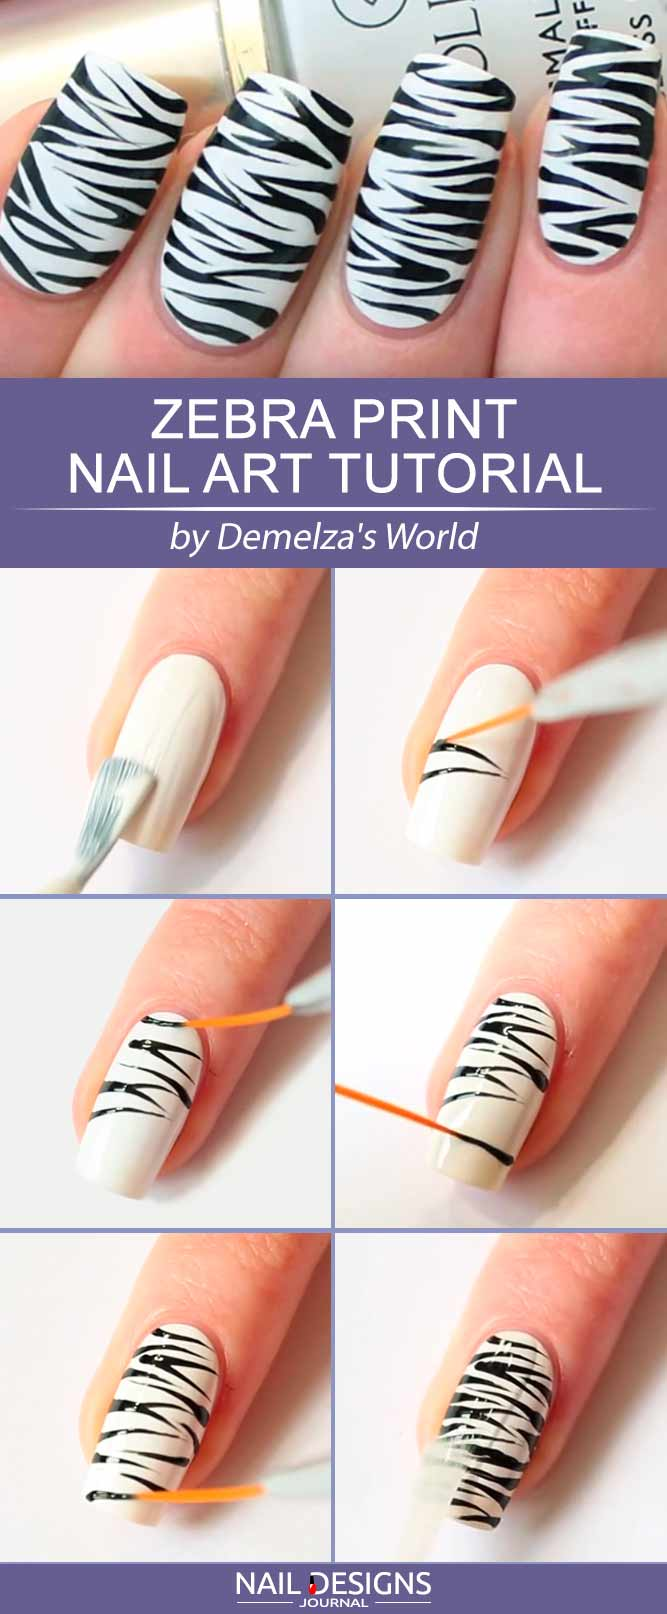 Zebra Print Nails To Let Your Inner Animal Out – FlawlessEnd